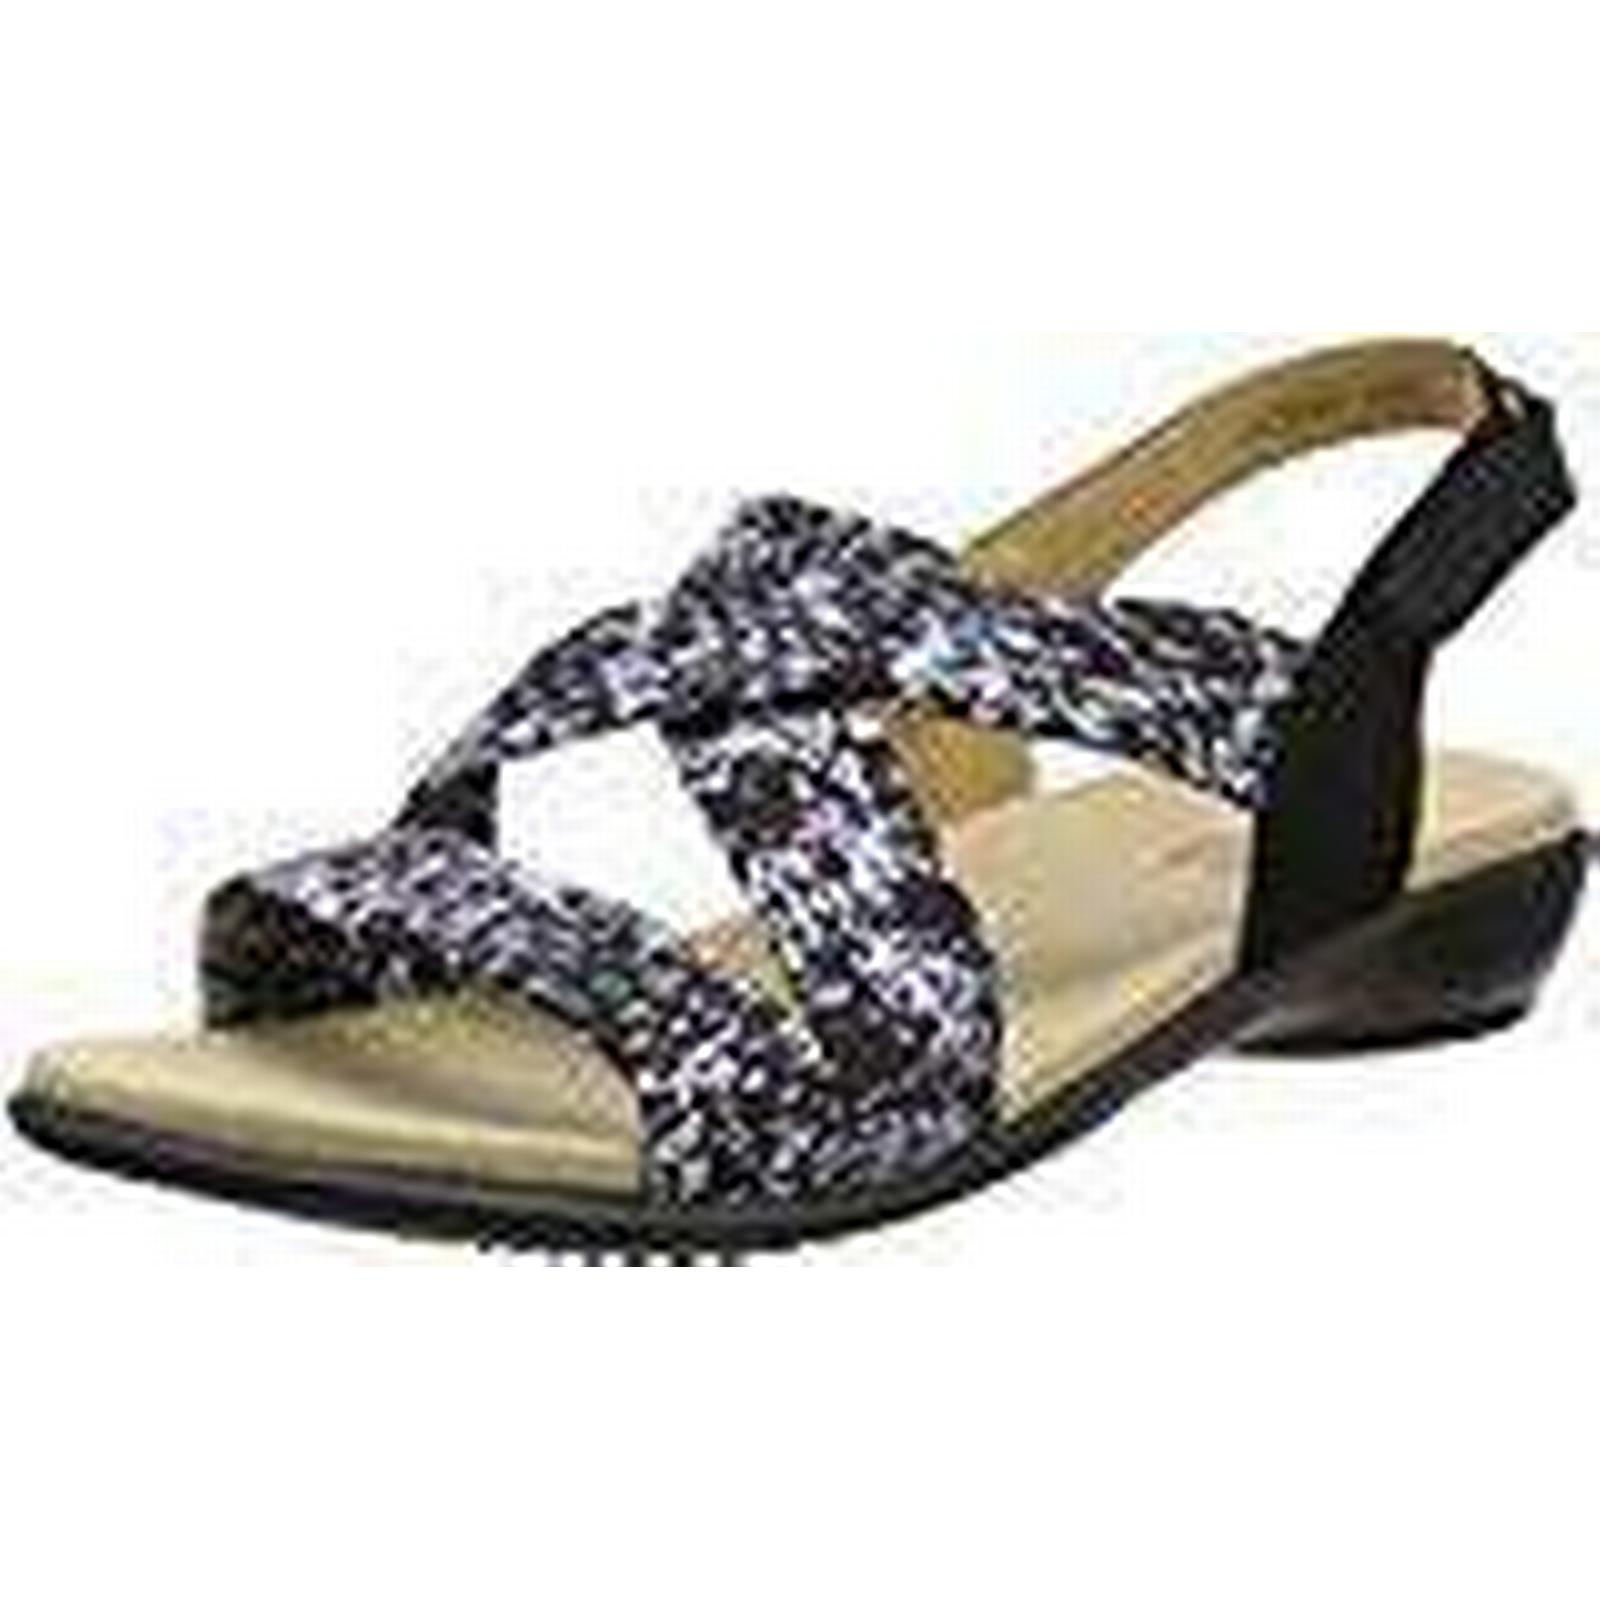 Hotter Women''s Fleck), Shimmer Open-Toe Sandals, (Black Fleck), Women''s 6 UK 39 EU 04fffc